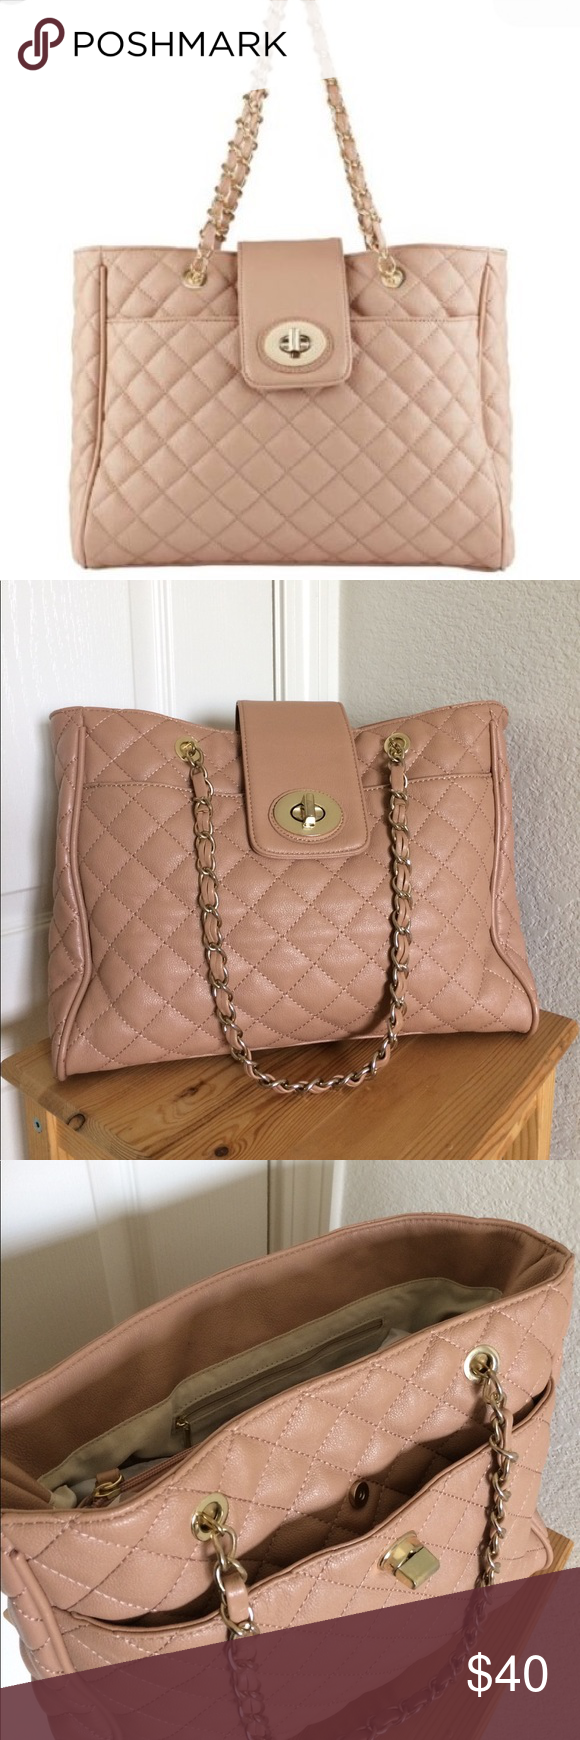 "Blush Quilted Chain Bag Excellent condition. Used once. Measures 14""x5""x11"" Aldo Bags Shoulder Bags"